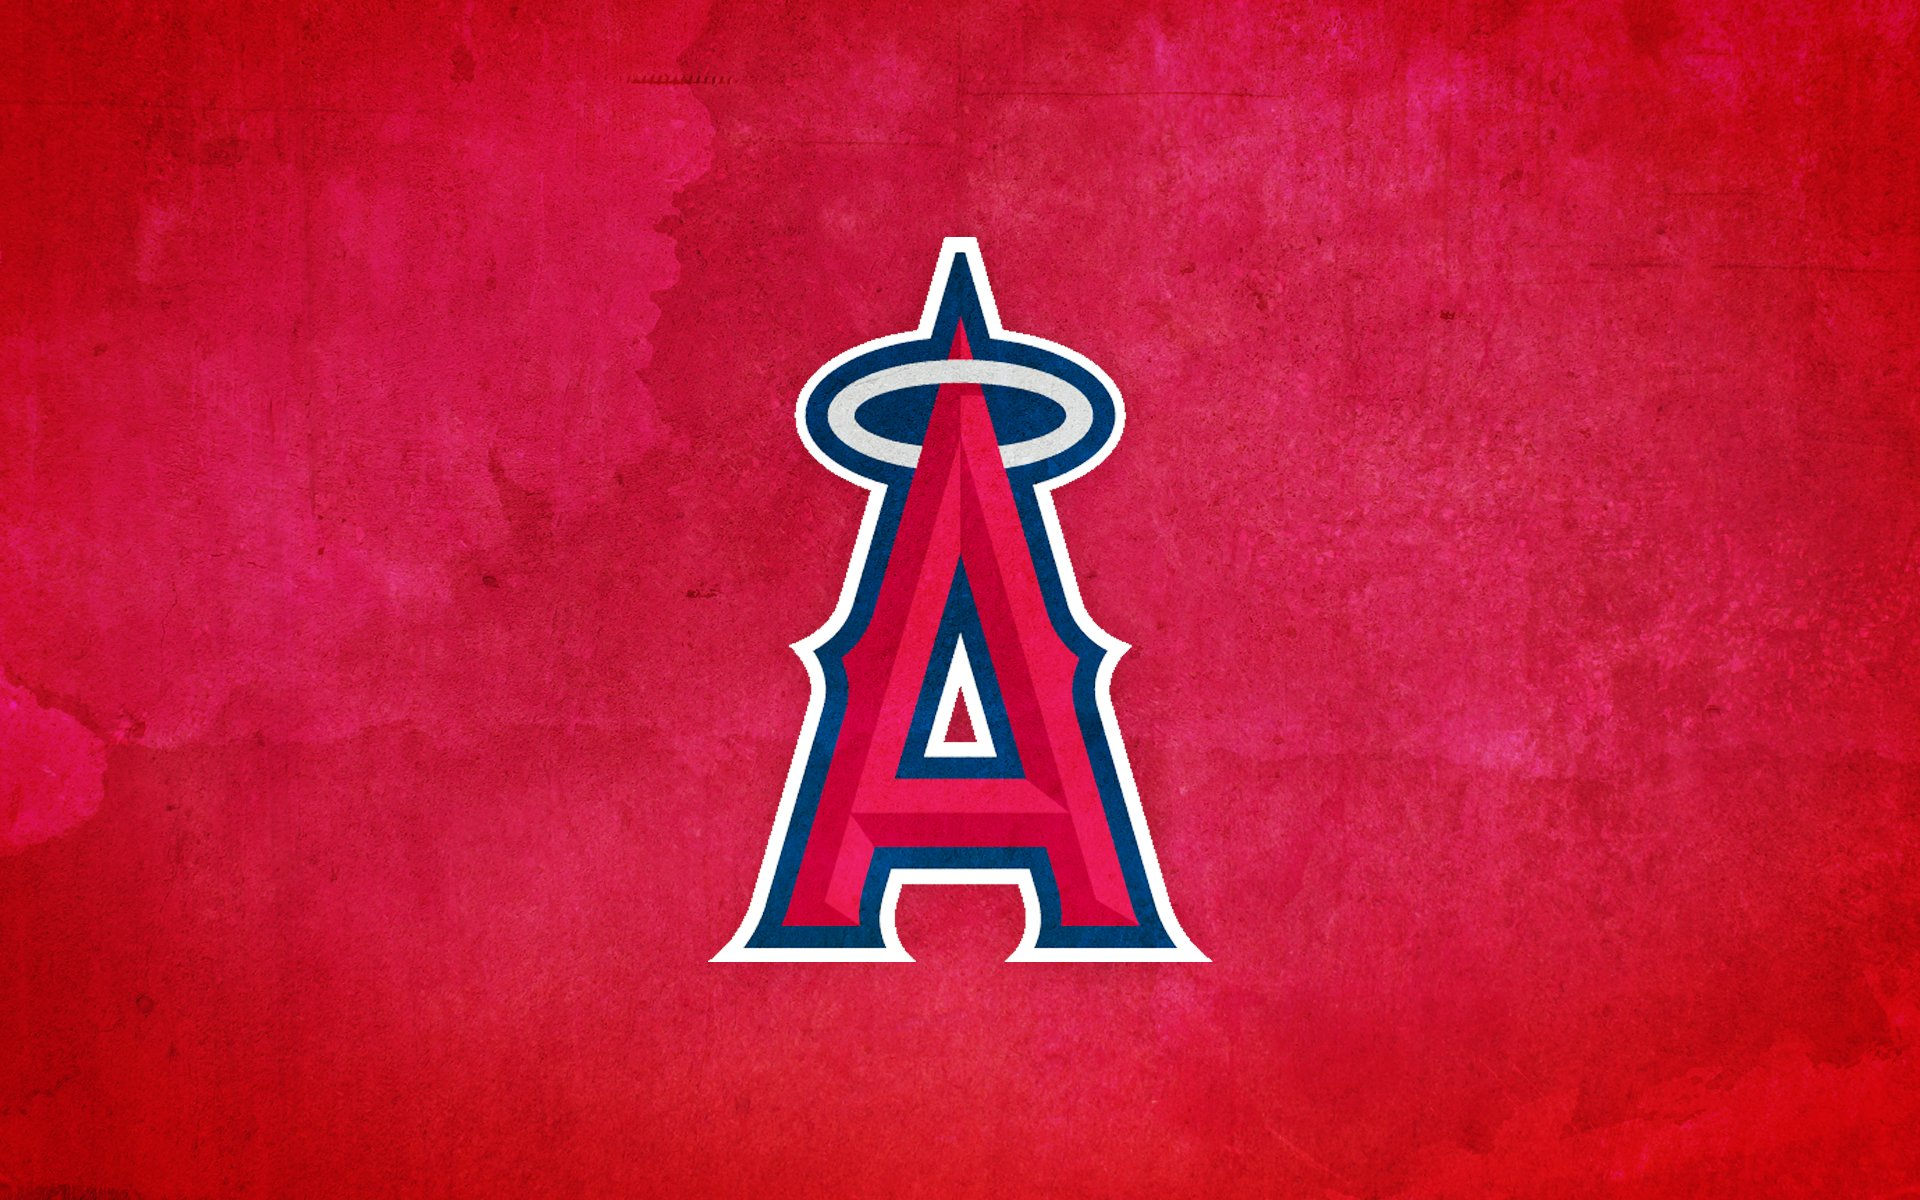 1920x1200 - Los Angeles Angels of Anaheim Wallpapers 12